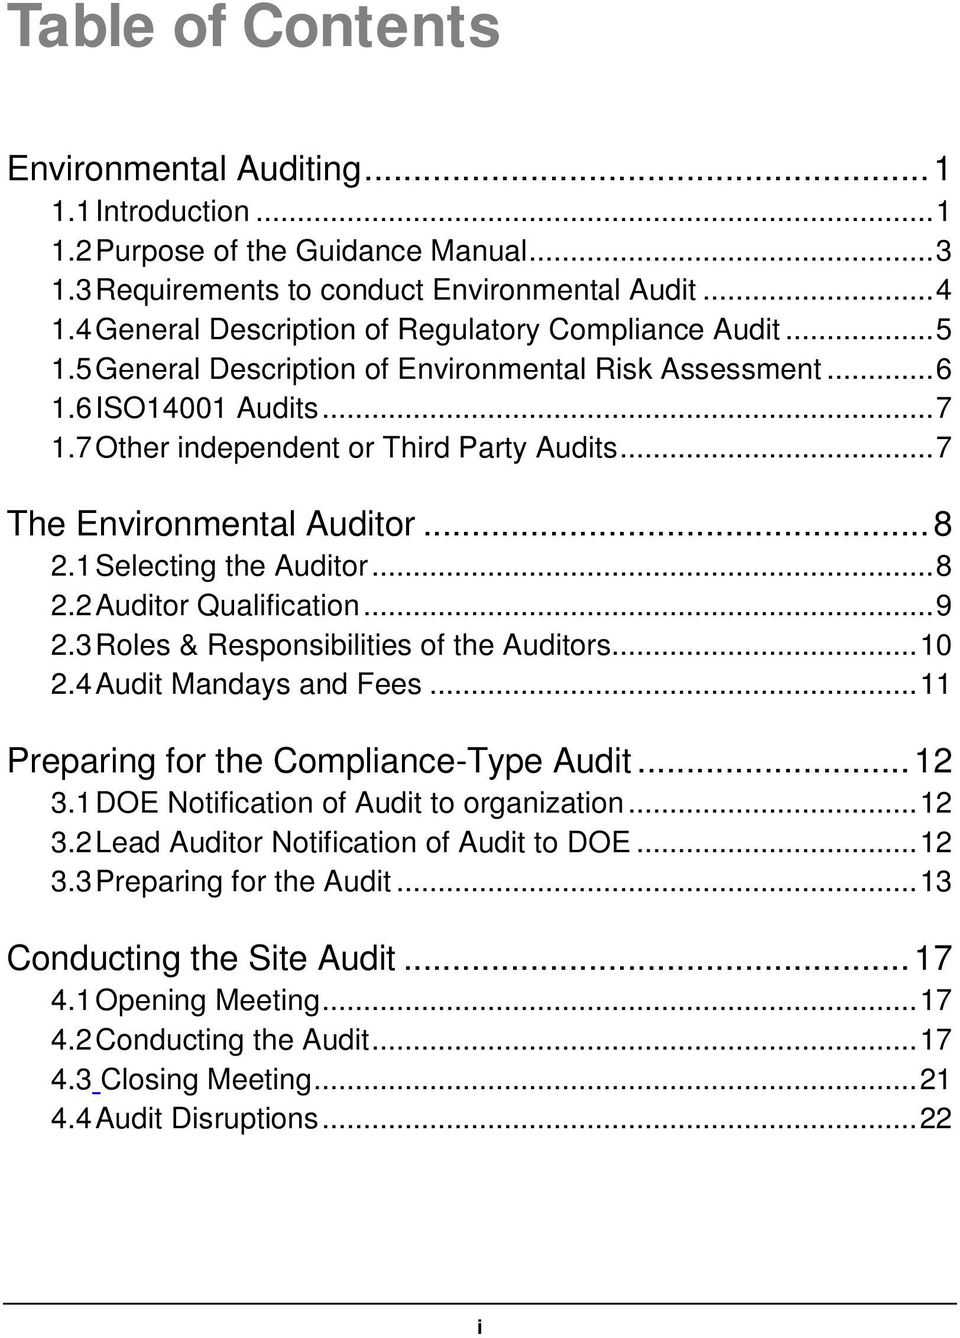 .. 7 The Environmental Auditor... 8 2.1 Selecting the Auditor... 8 2.2 Auditor Qualification... 9 2.3 Roles & Responsibilities of the Auditors... 10 2.4 Audit Mandays and Fees.